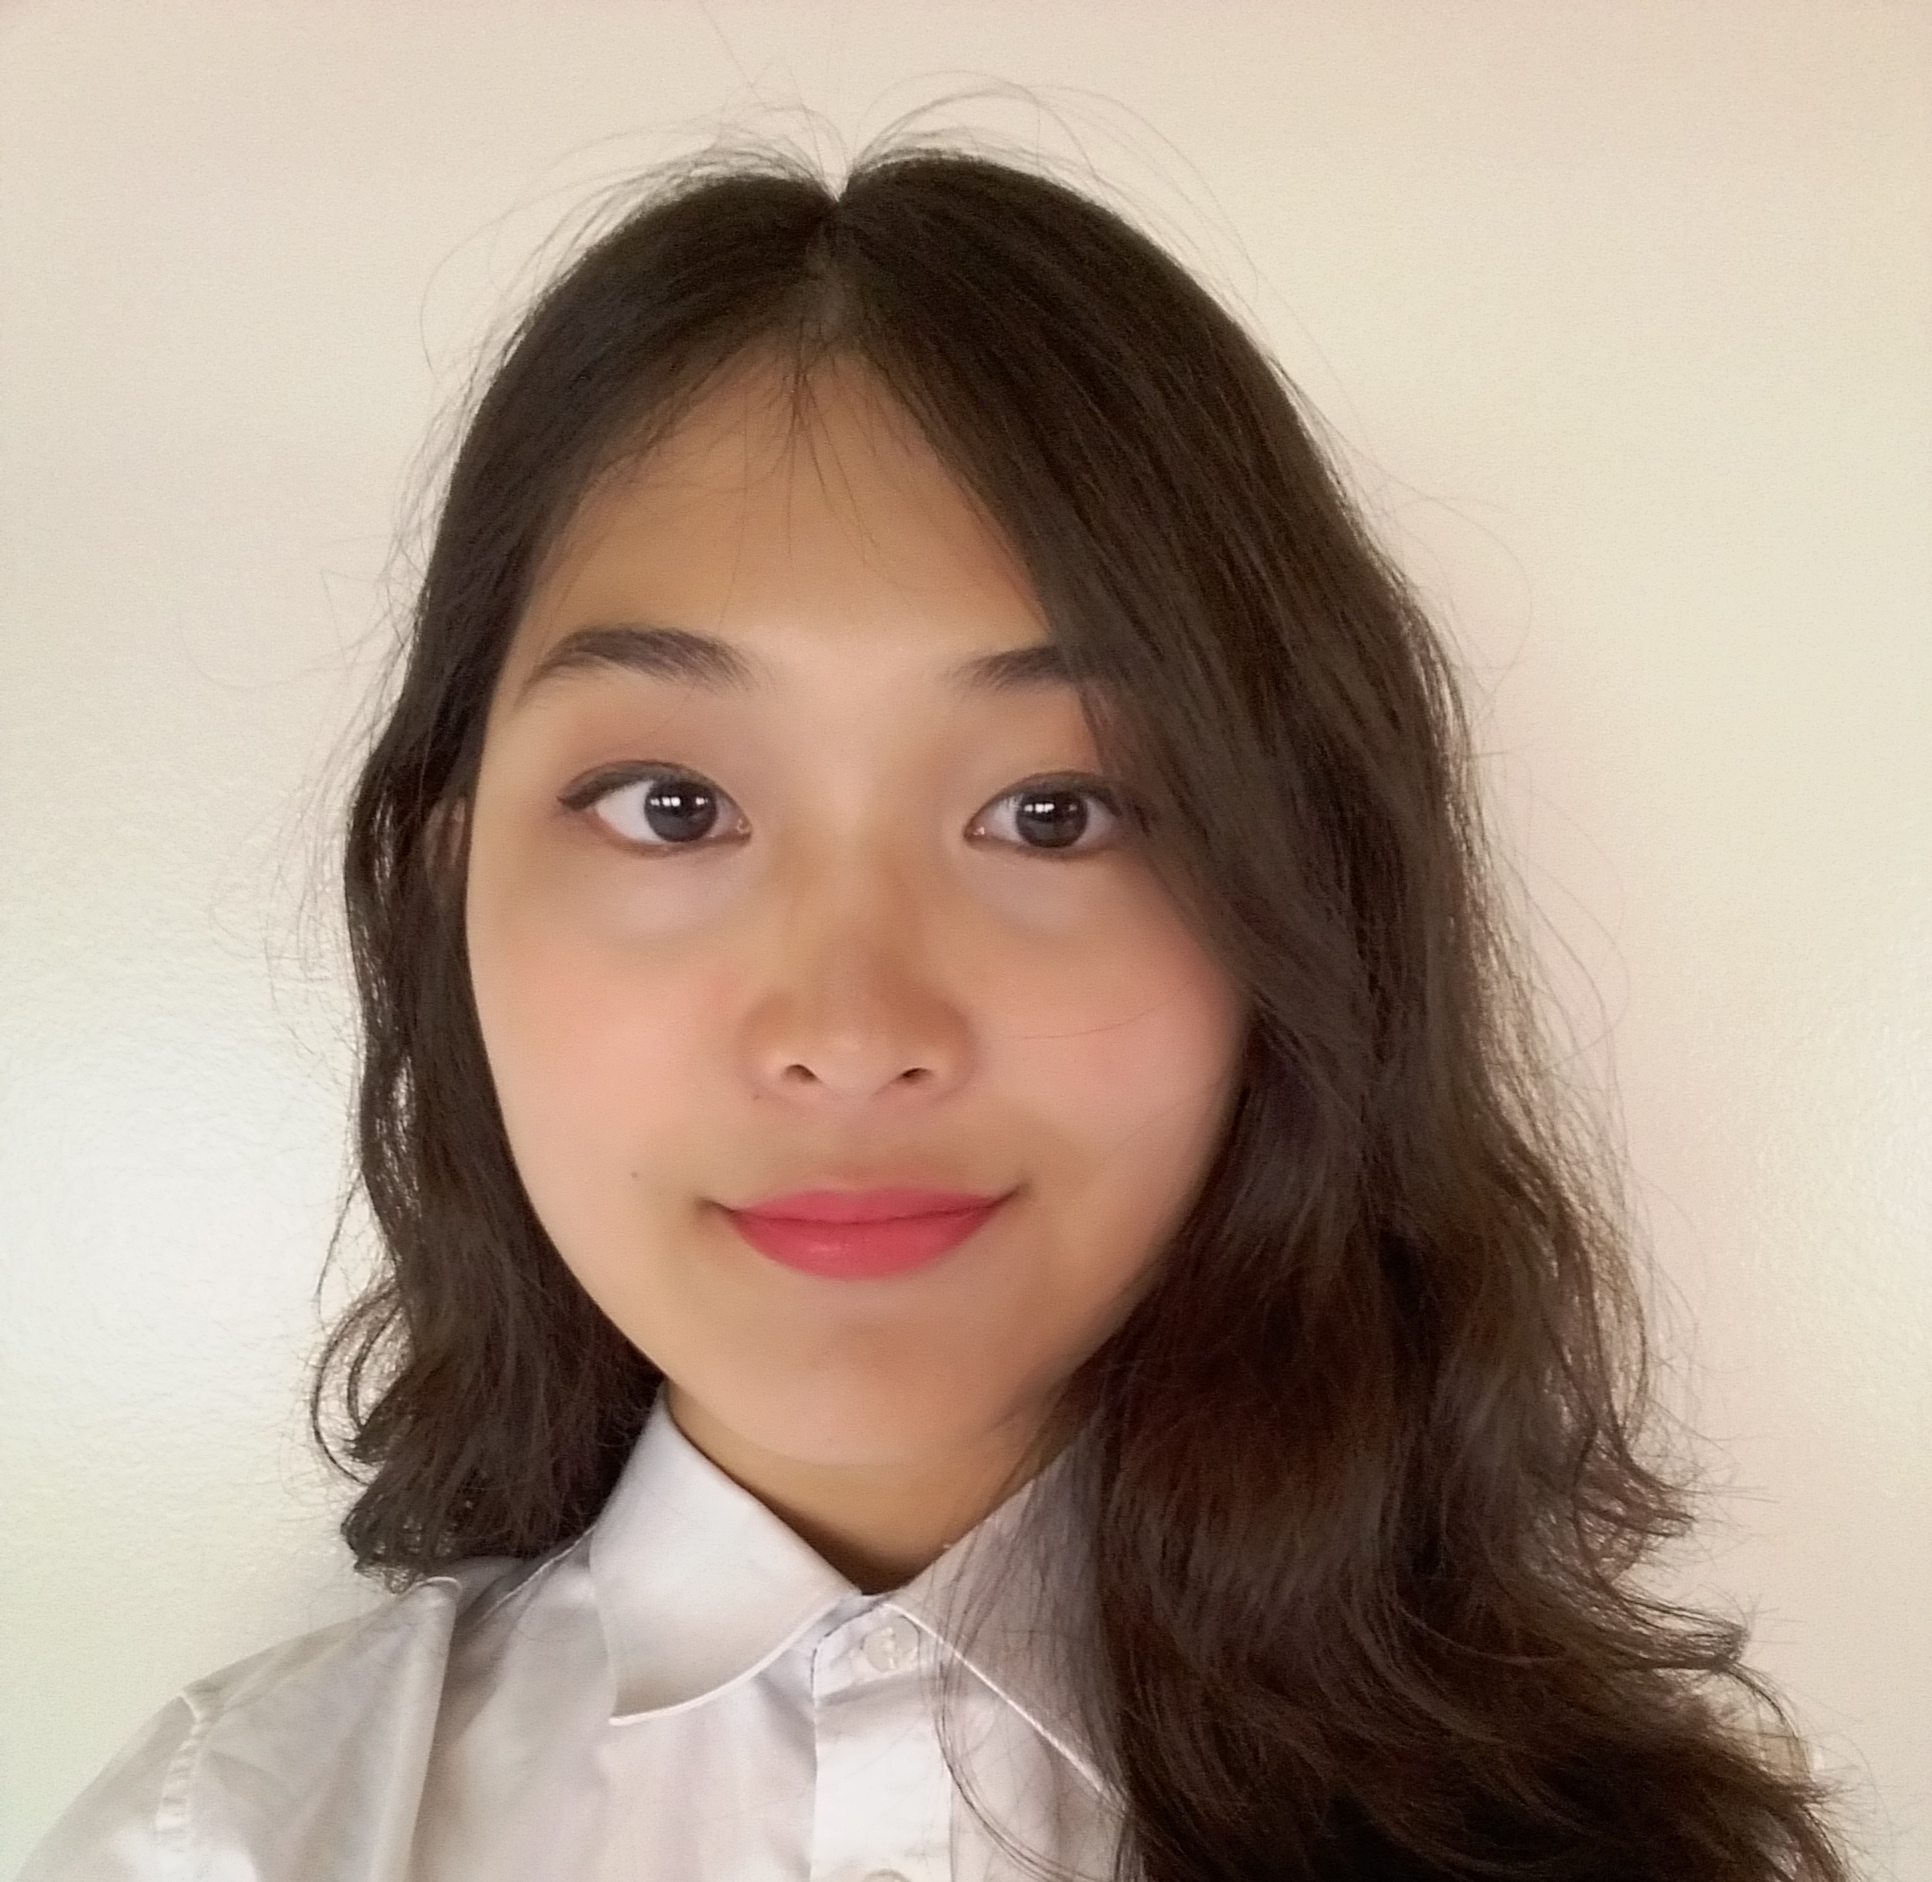 https://raw.githubusercontent.com/PurdueCAM2Project/HELPSweb/master/source/images/member_seoyoung_lee.jpg